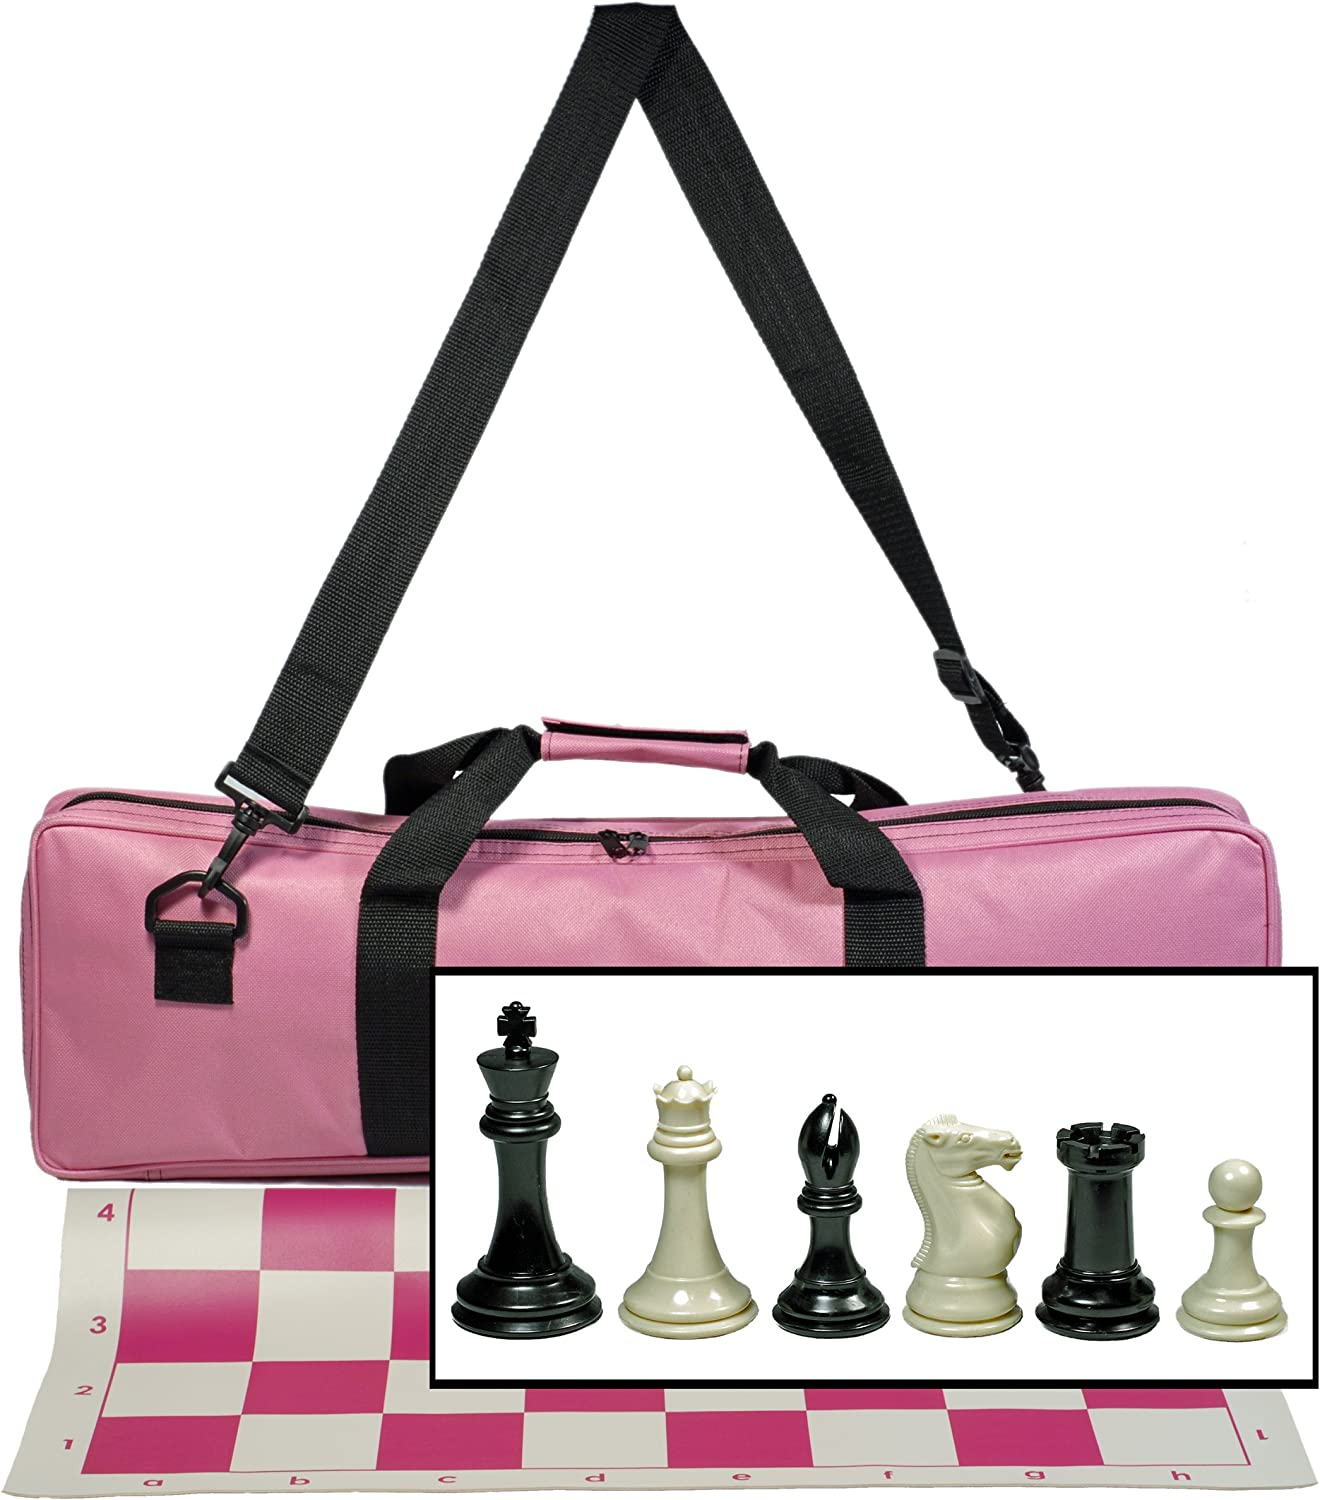 WE Games Premium Tournament Chess Set with Deluxe Pink Canvas Bag, Super Weighted Staunton Chess Pieces - 4 Inch King by WE Games